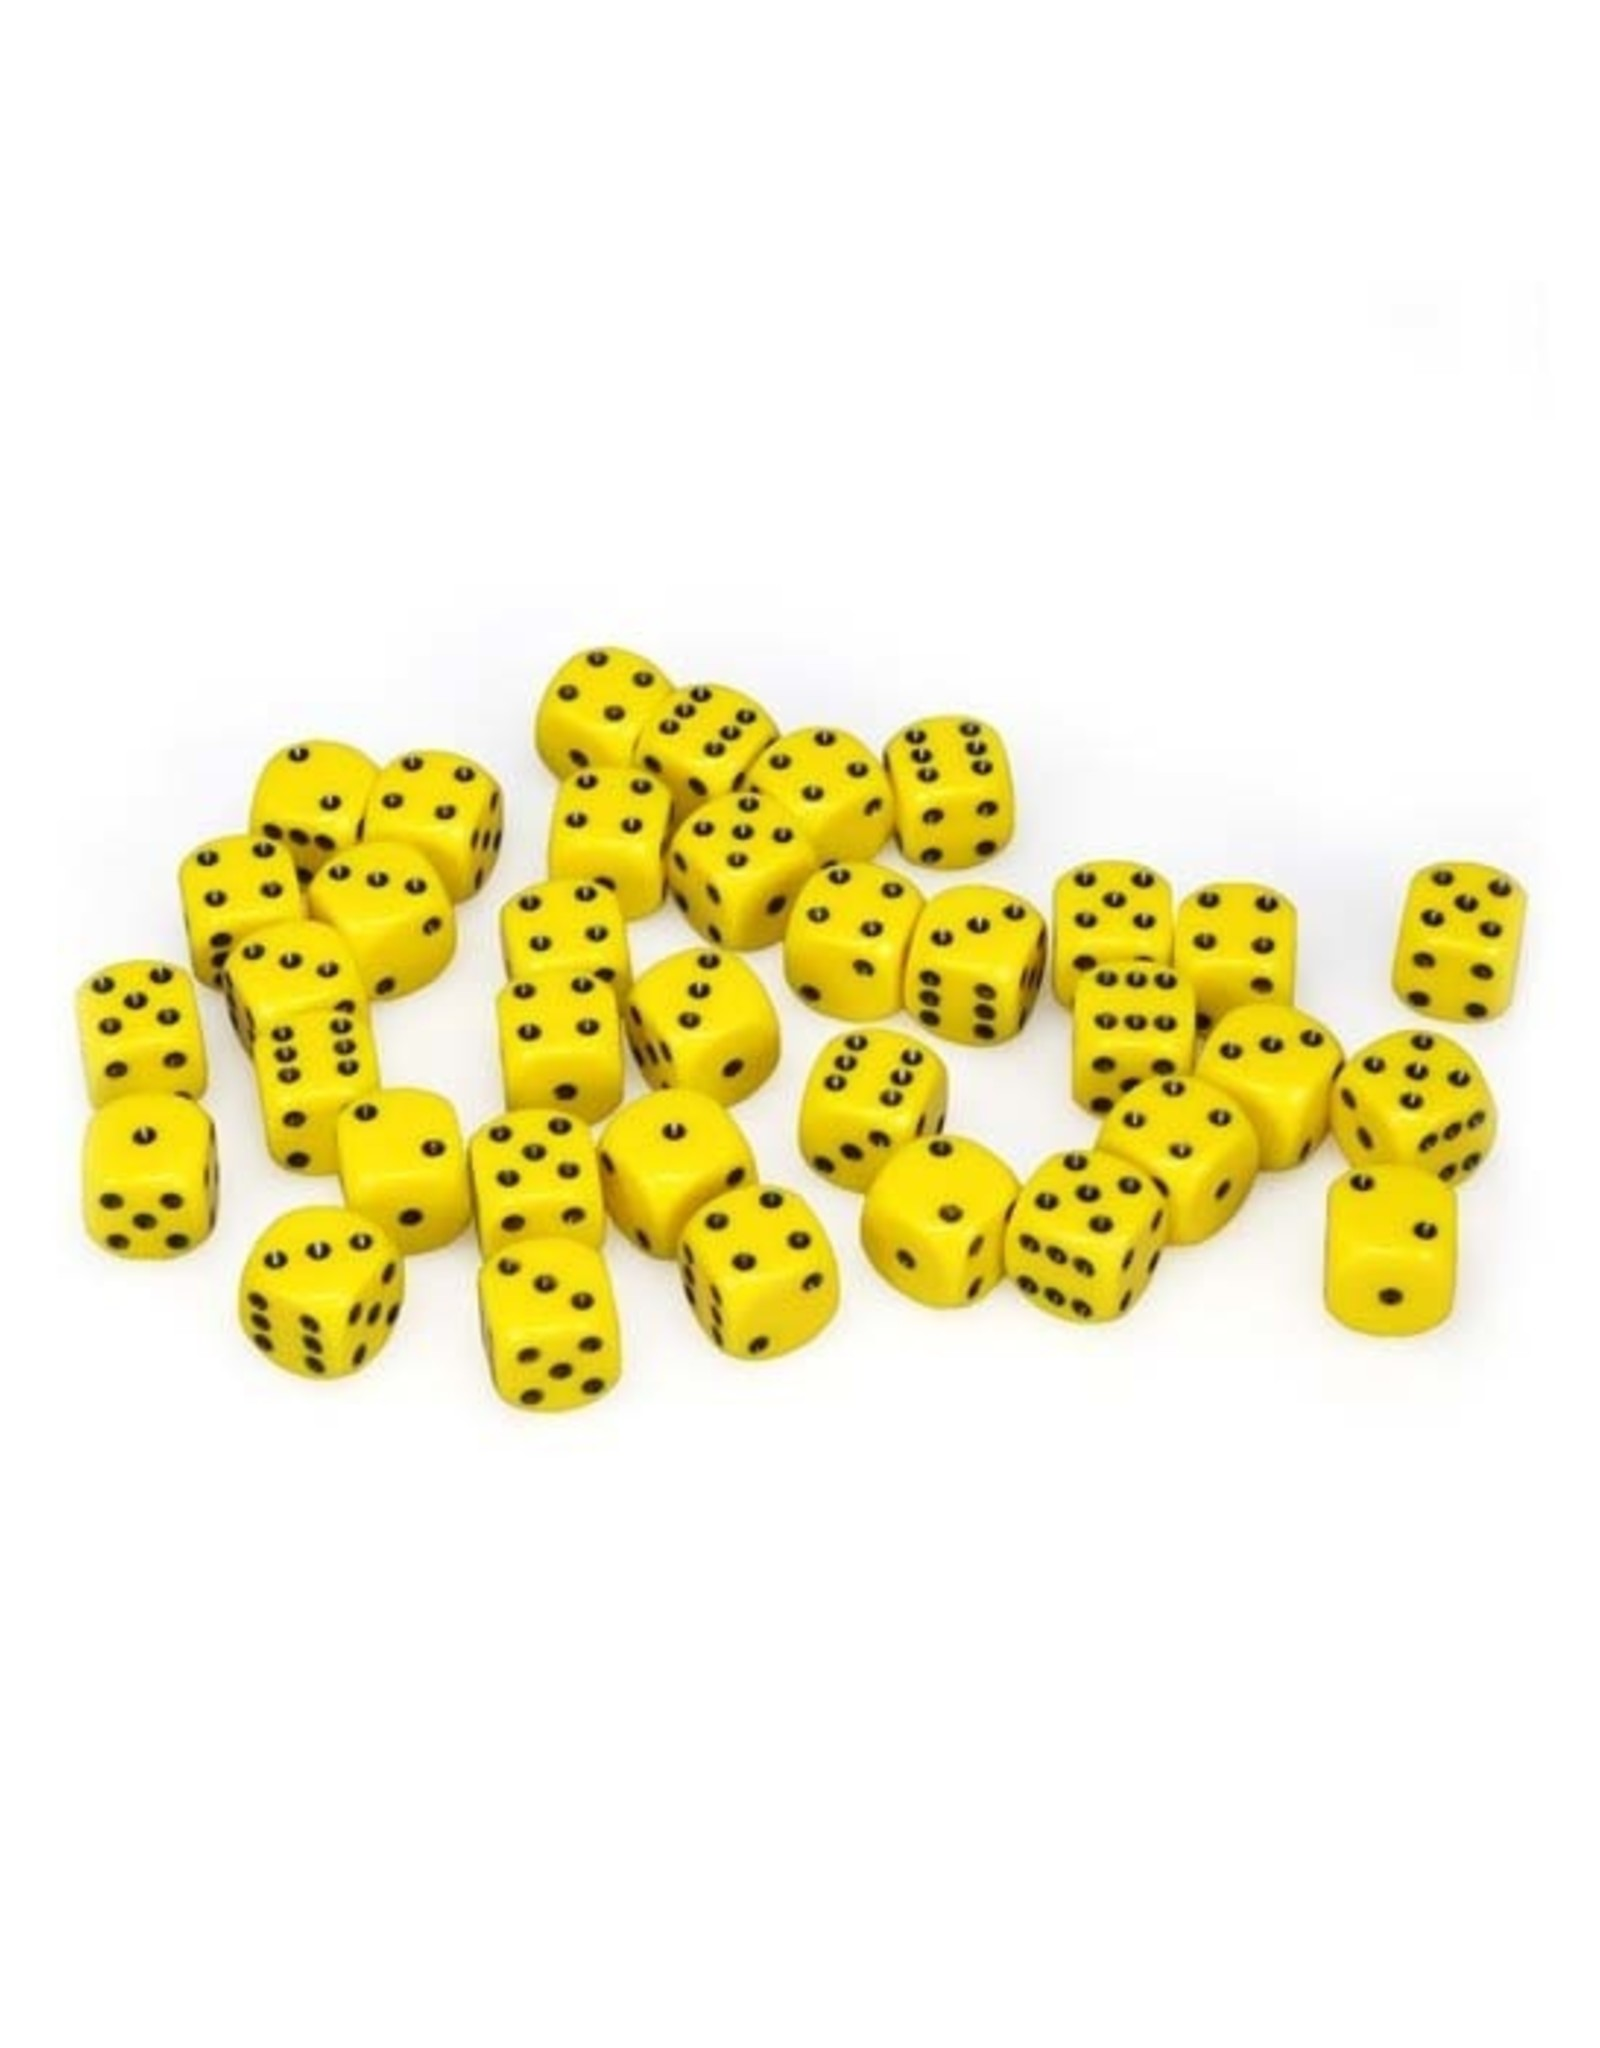 Chessex Chessex: 12mm D6 - Opaque - Yellow w/ Black